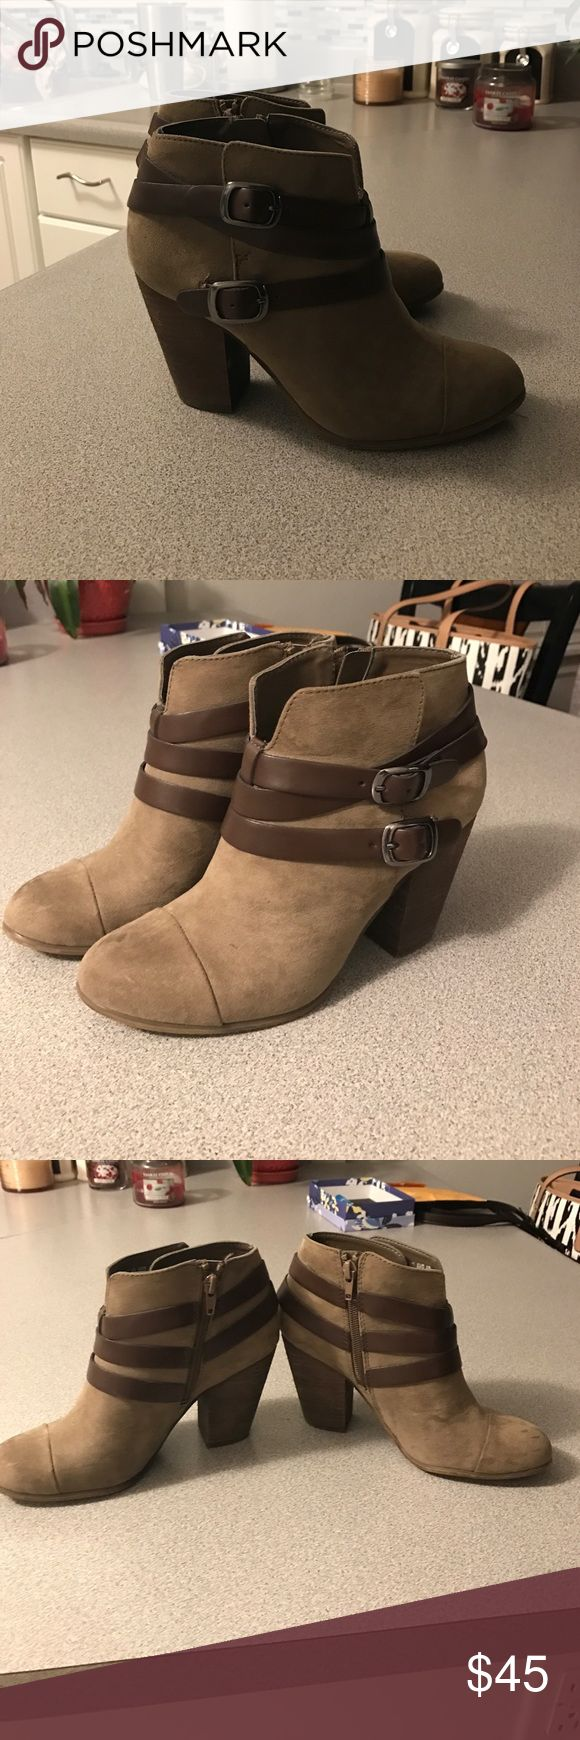 Carlos Santana boots 👢 Wore a couple times, like brand new! Very cute Swede boots with buckle details Carlos Santana Shoes Ankle Boots & Booties